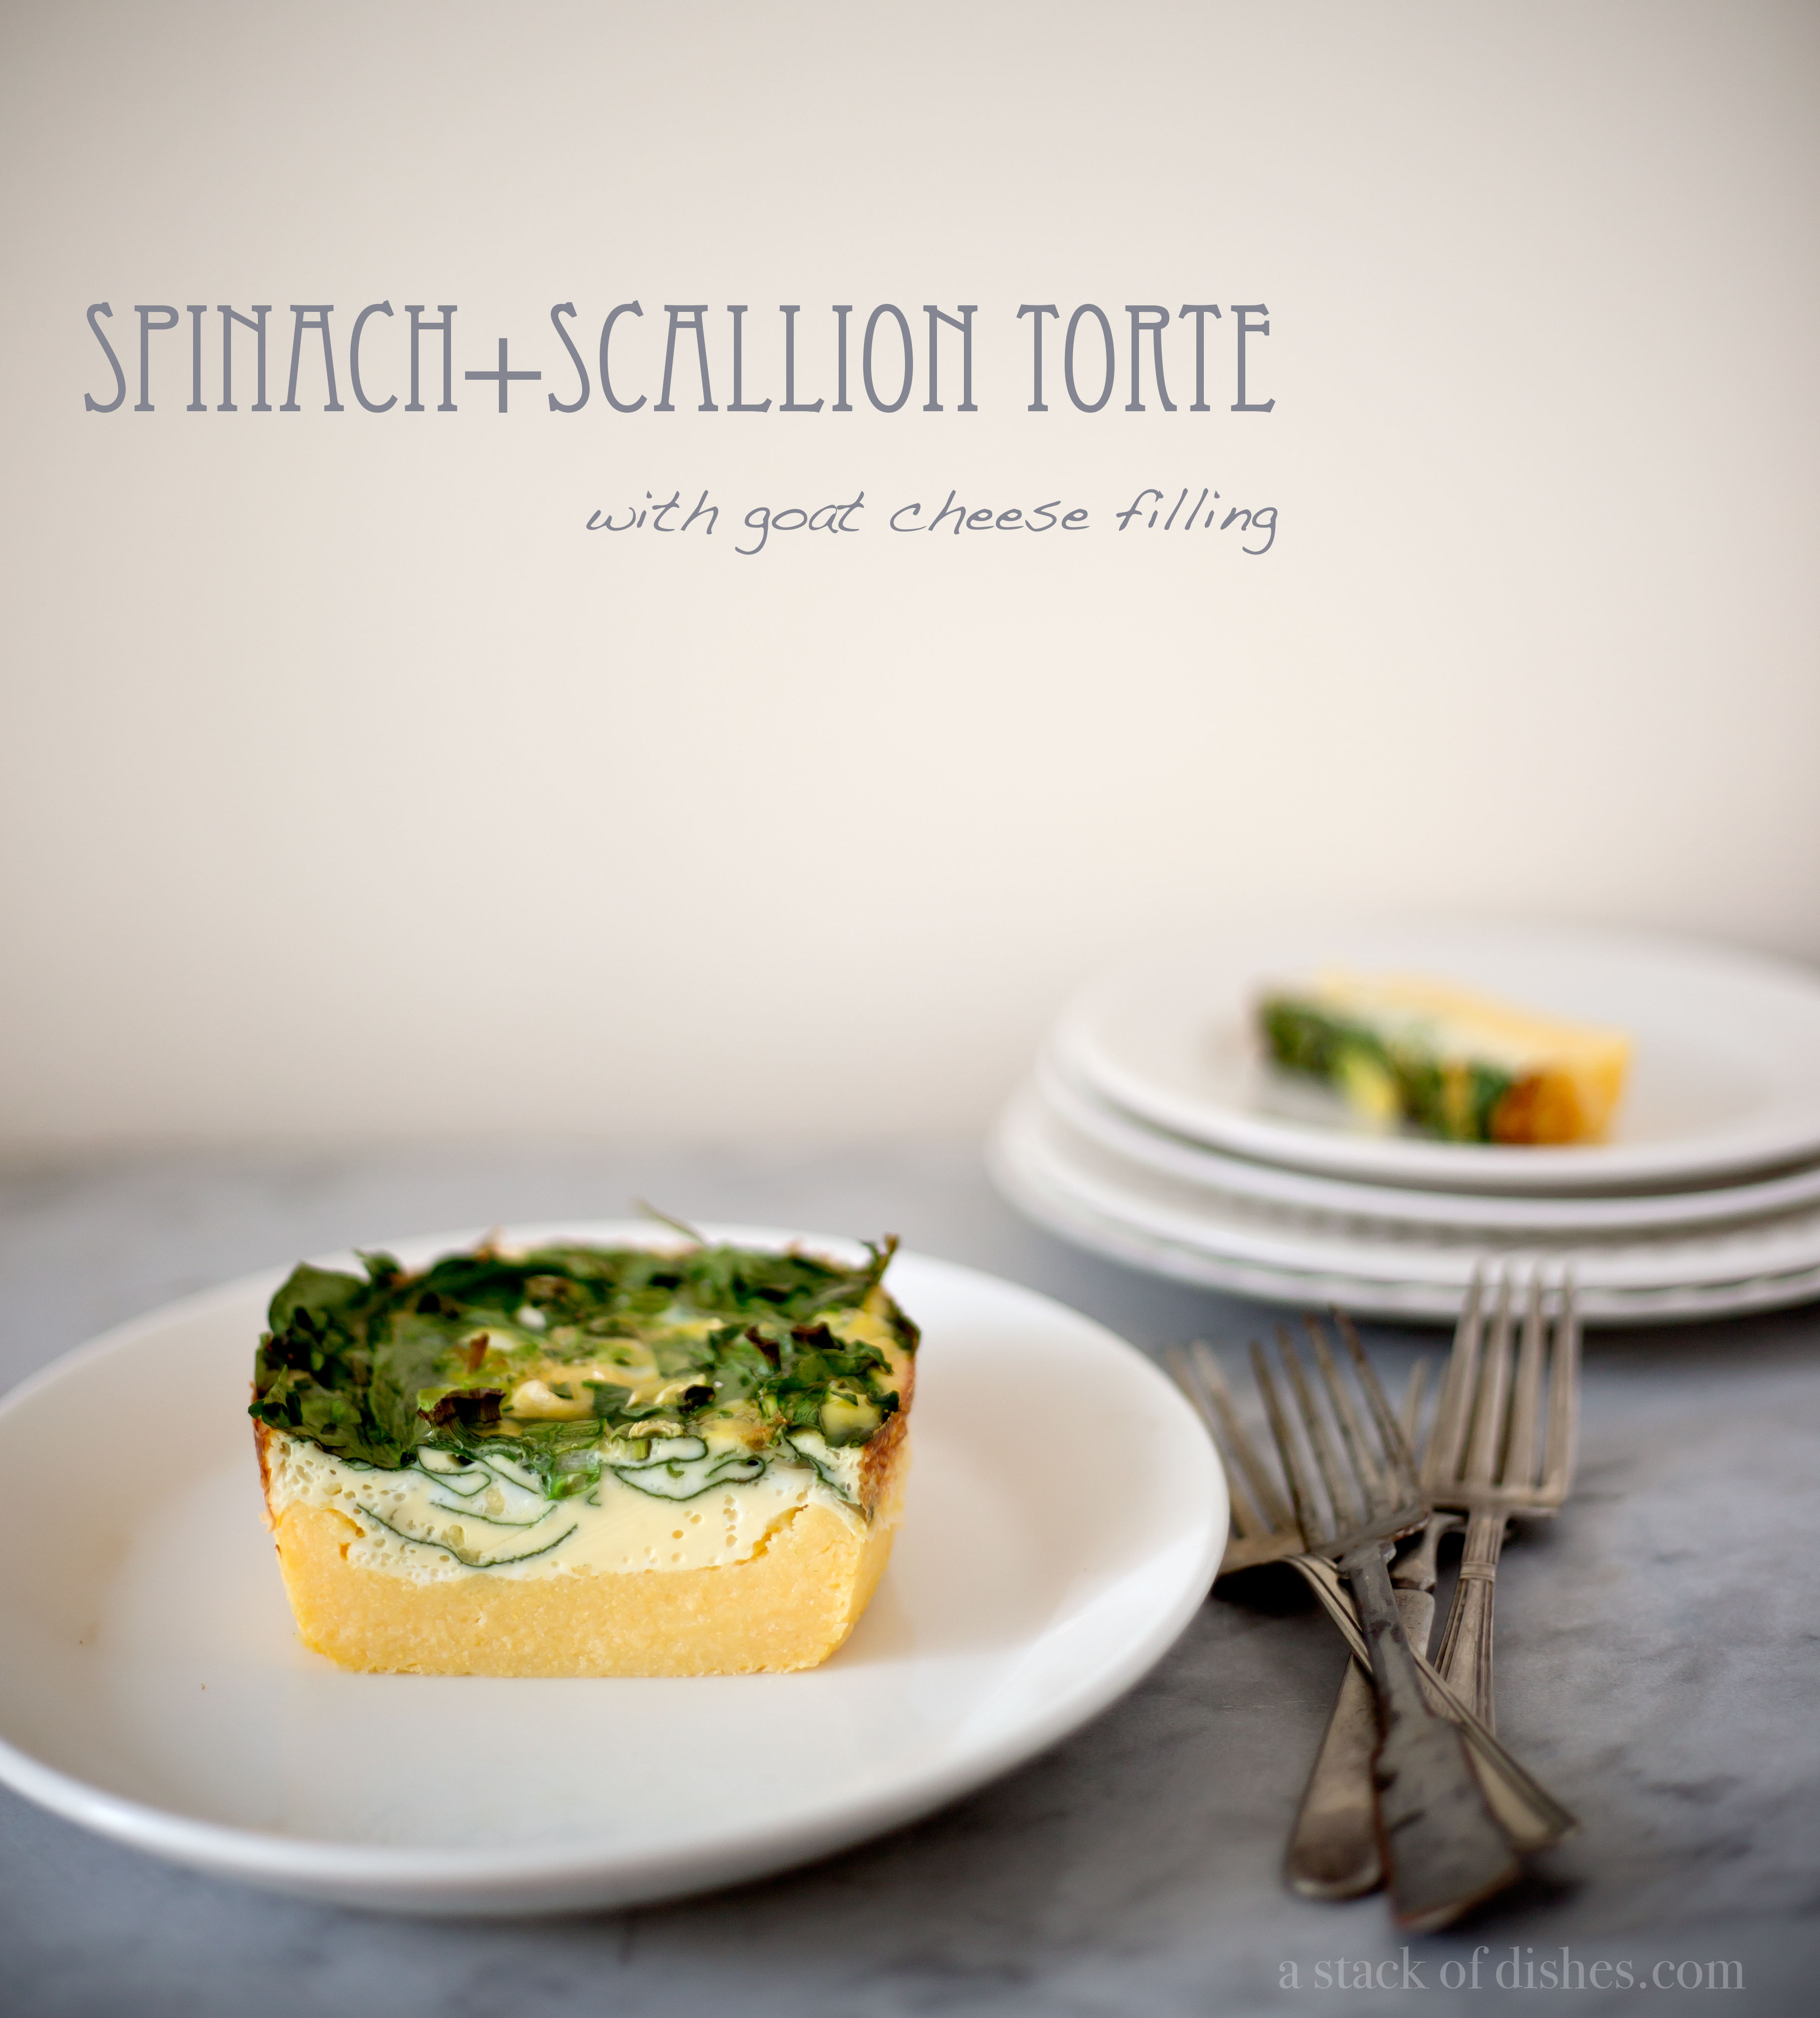 Spinach+Scallion Savory Torte